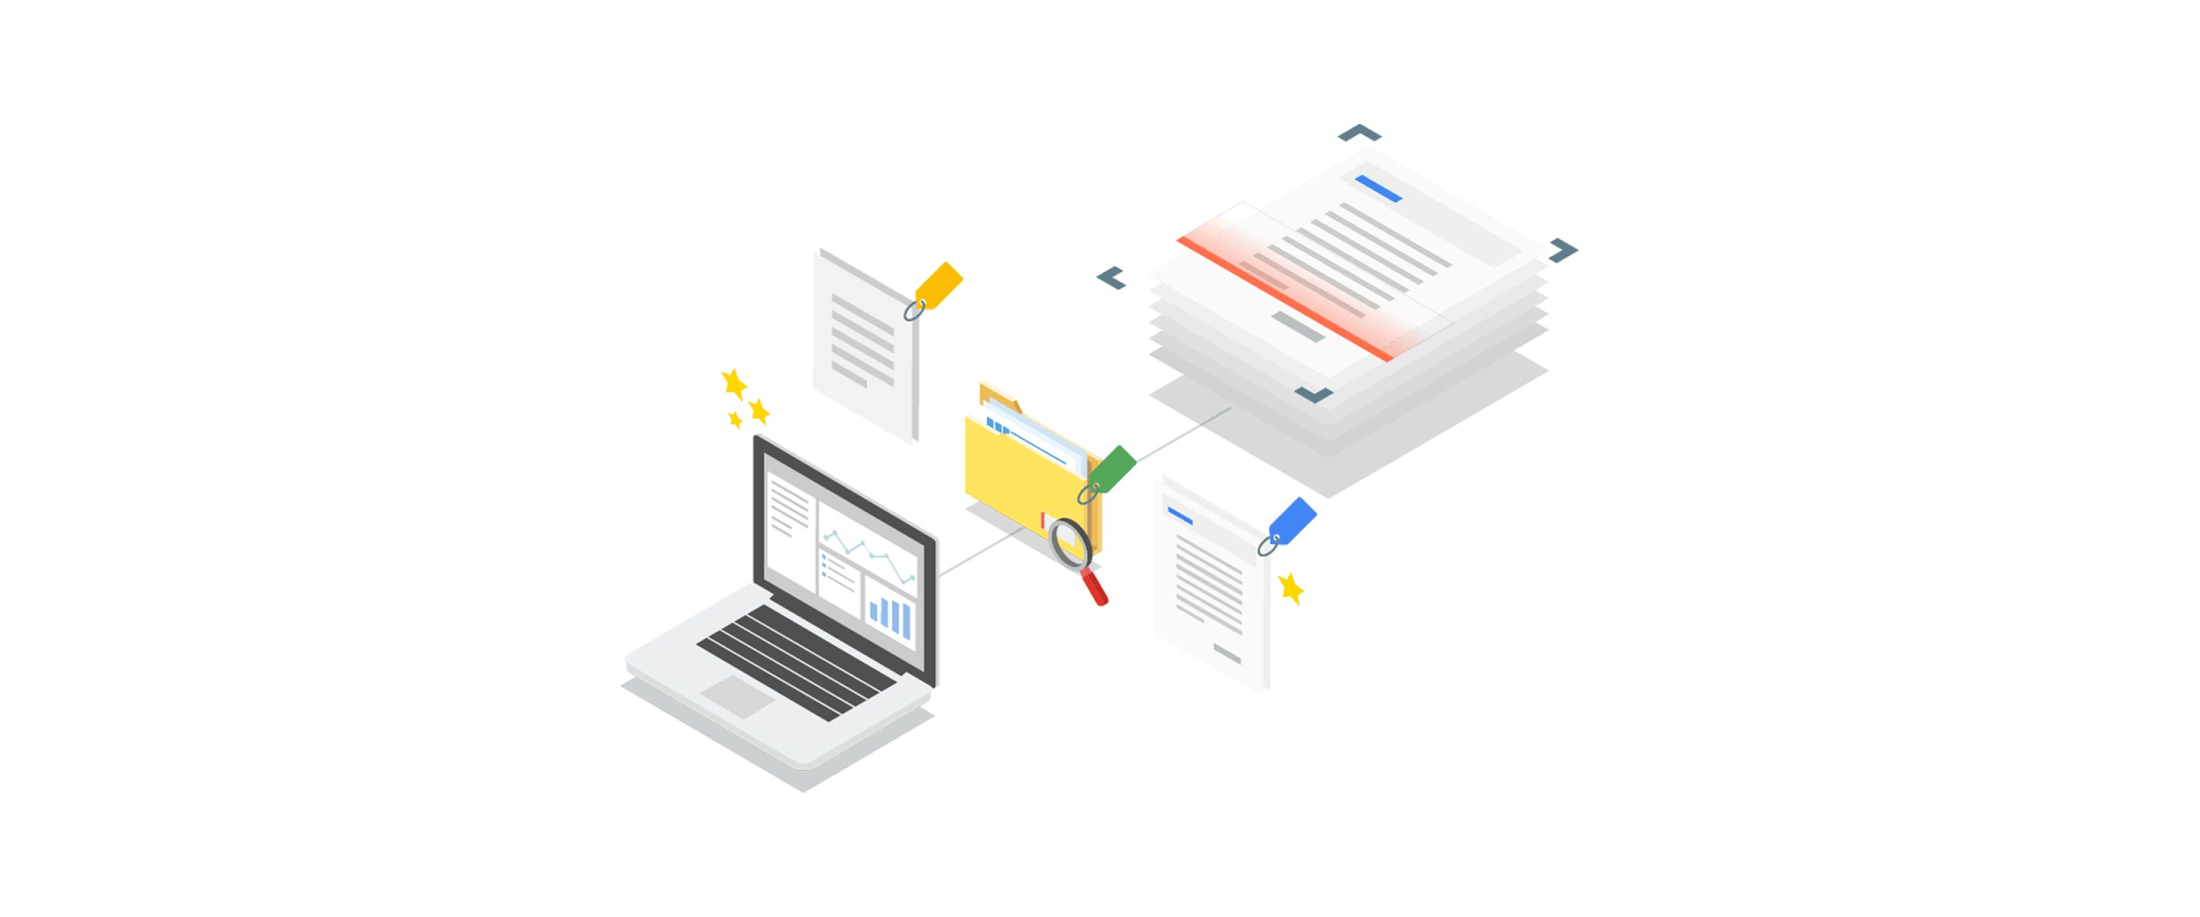 Building a document understanding pipeline with Google Cloud